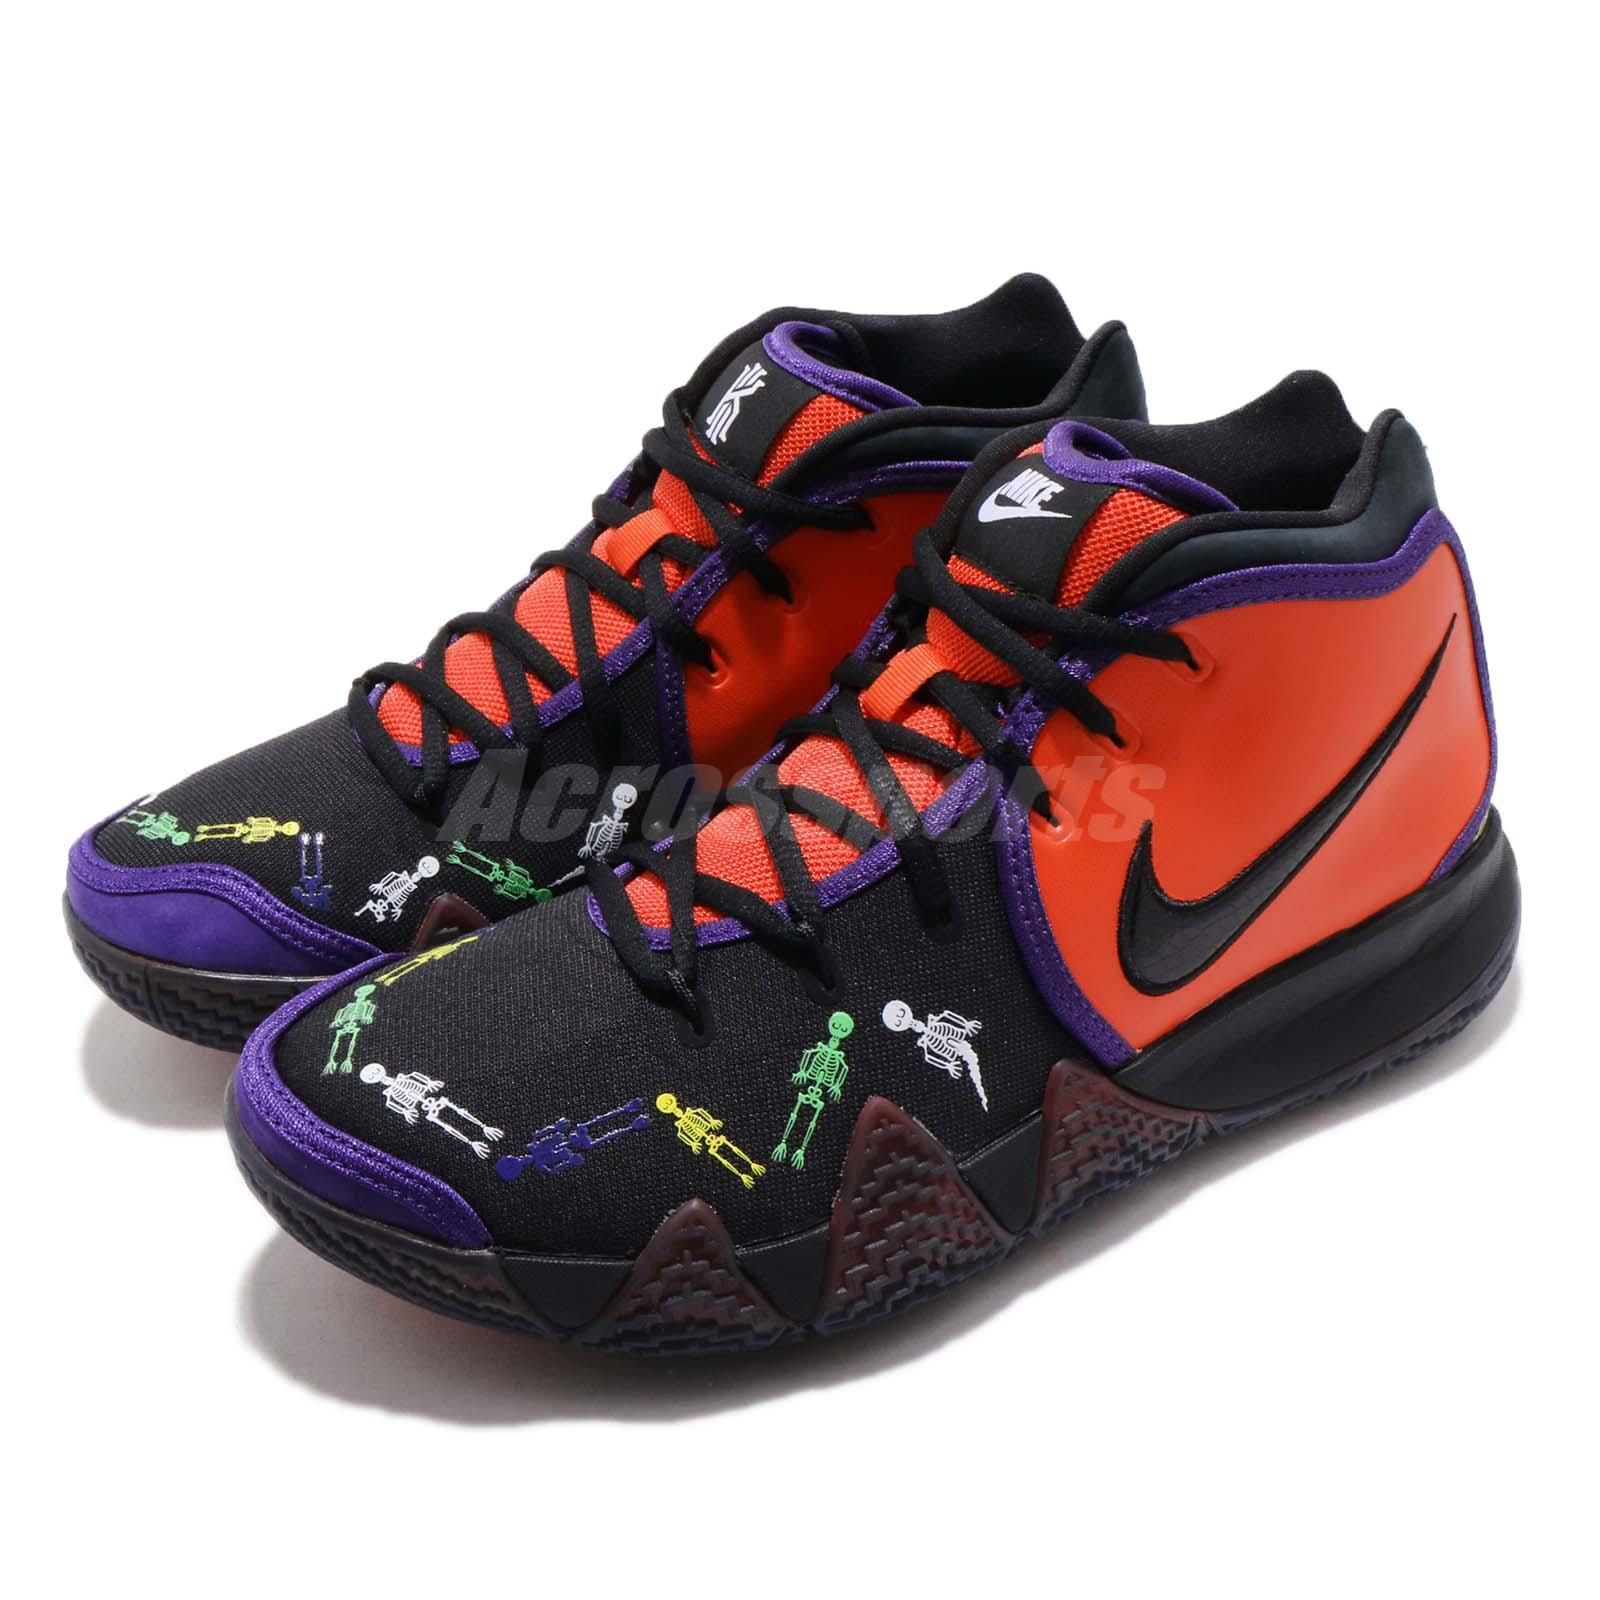 buy online 922b7 6802c Details about Nike Kyrie 4 DOTD Day of the Dead SB Irving Mens Basketball  Shoes CI0278-800